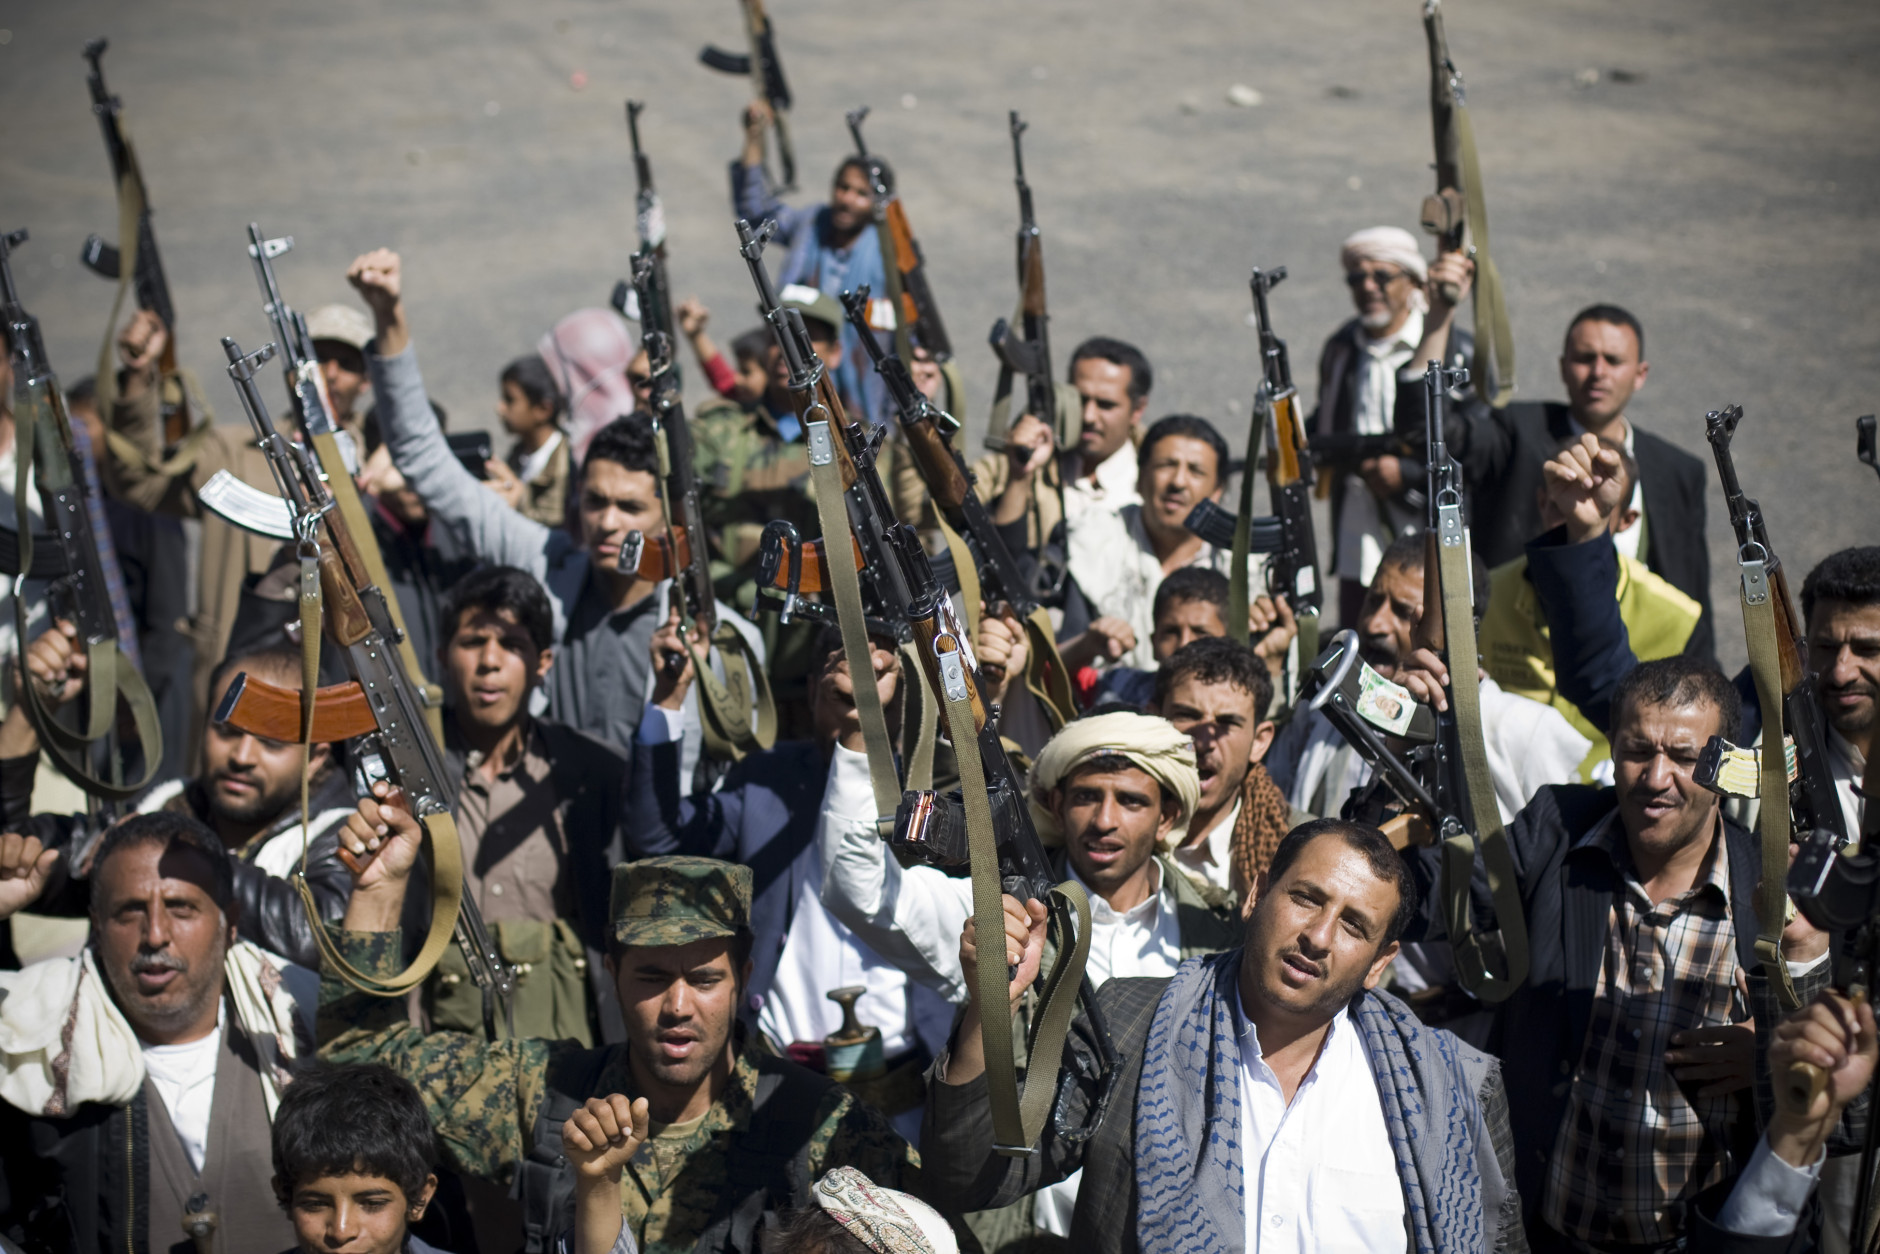 Houthi Shiite Yemenis hold their weapons during a rally to show support for their comrades in Sanaa, Yemen, Wednesday, Feb. 4, 2015. Source:  AP Photo/Hani Mohammed http://wtop.com/middle-east/2015/02/shiite-rebels-moving-to-fill-yemens-power-vacuum/